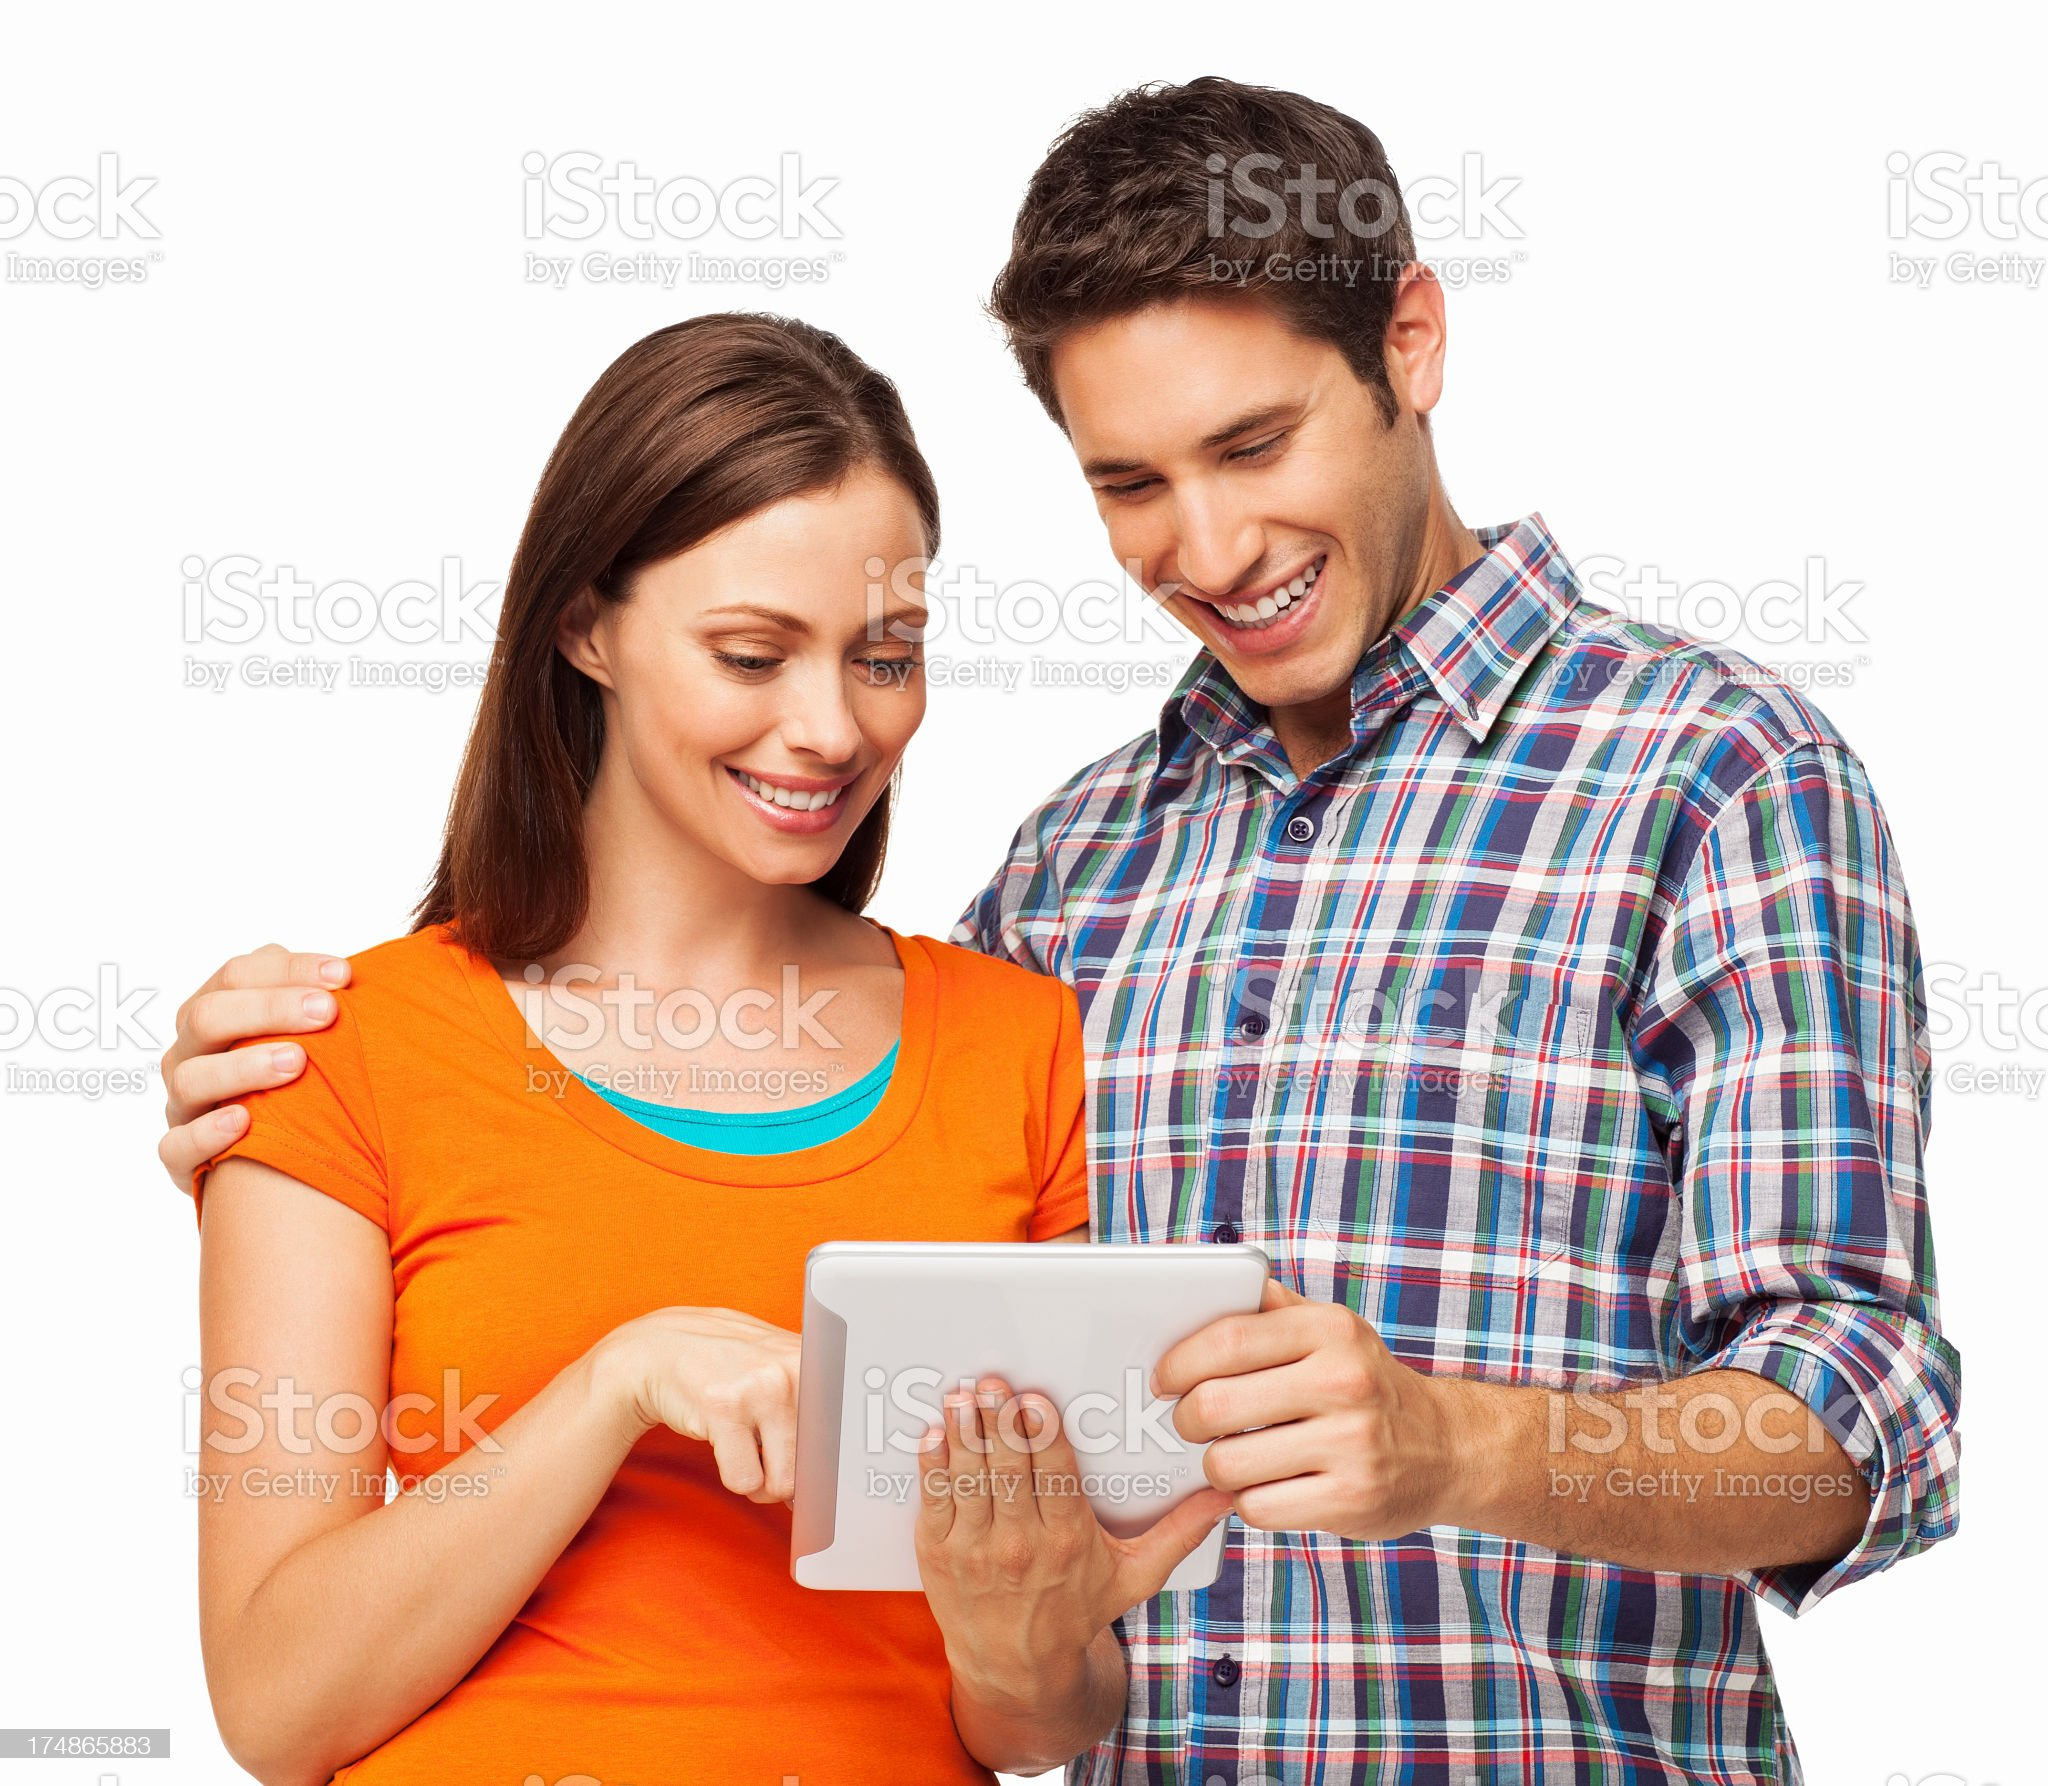 Couple Using Digital Tablet - Isolated royalty-free stock photo